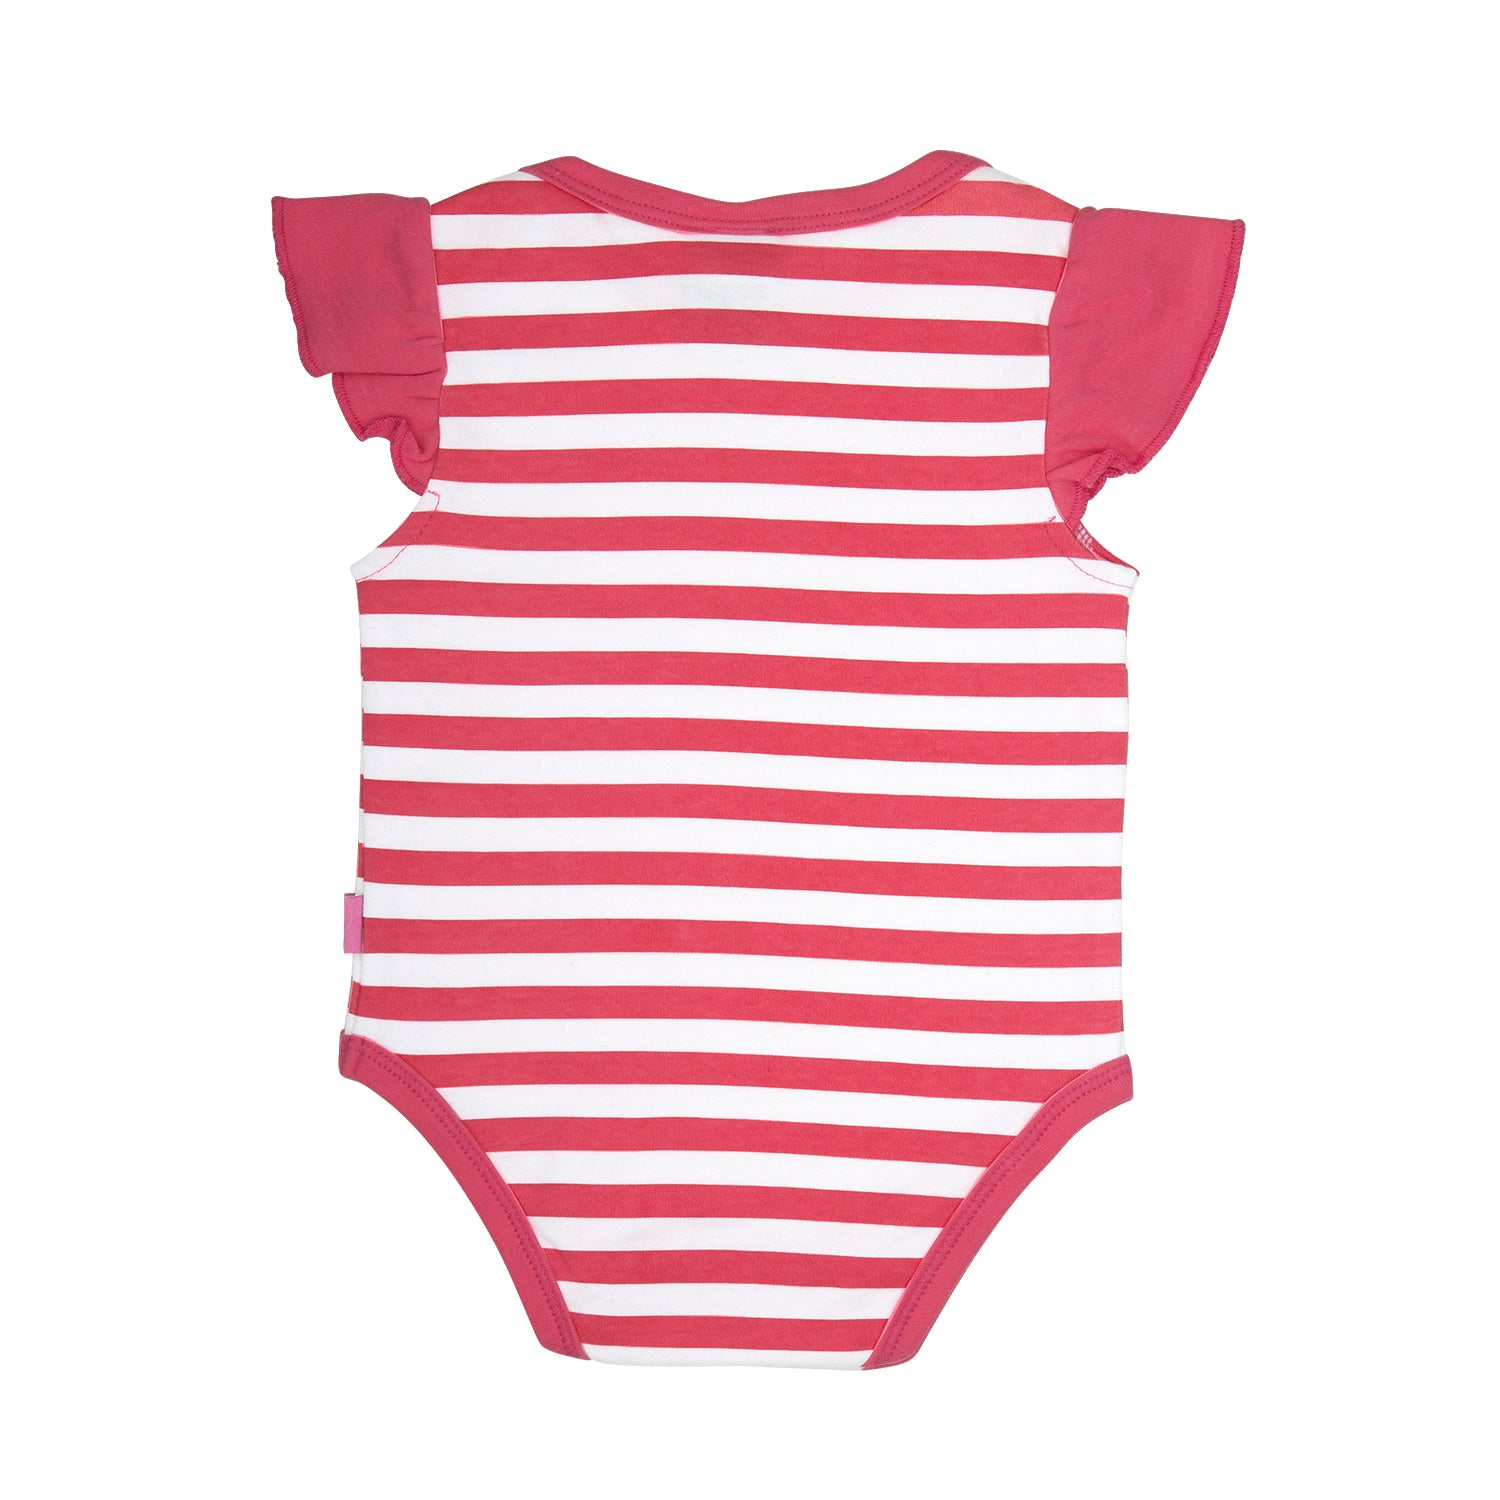 back side of a 100% cotton pink and white stripe bodysuit that is short sleeve with ruffles on the shoulder. Pink trim around the neck and leg openings.